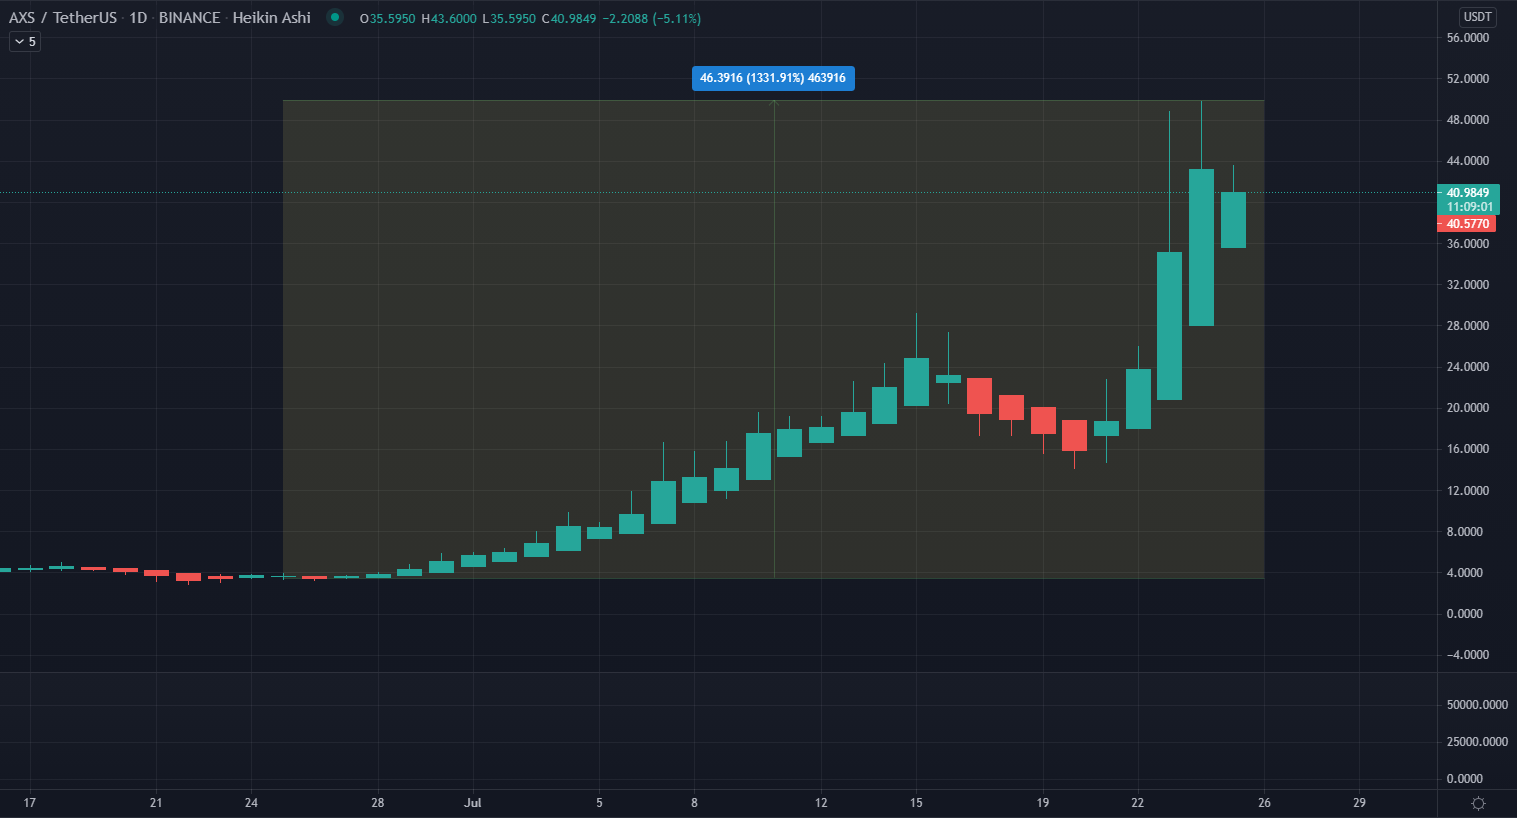 Axie Infinity (AXS) Price and Volume Hit All-Time High